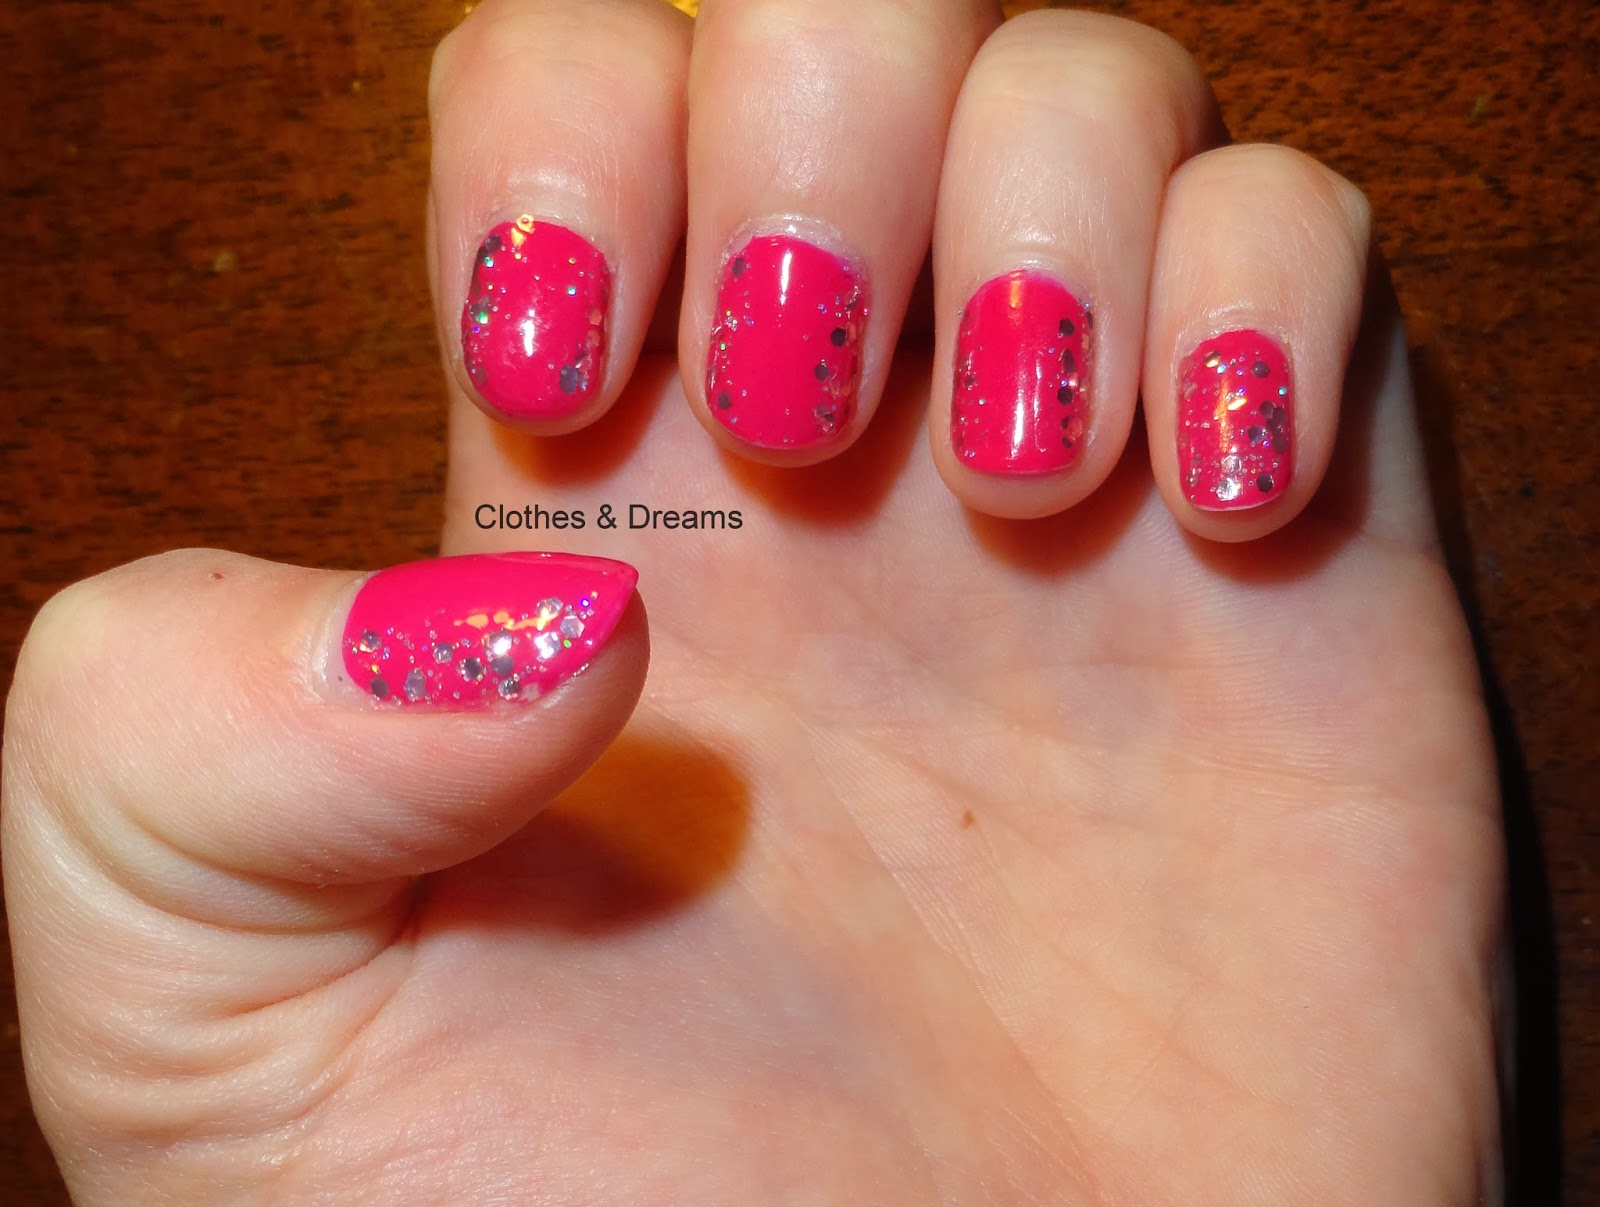 Clothes & Dreams: Self-rewarding feels so good! Nail art glitters Catrice